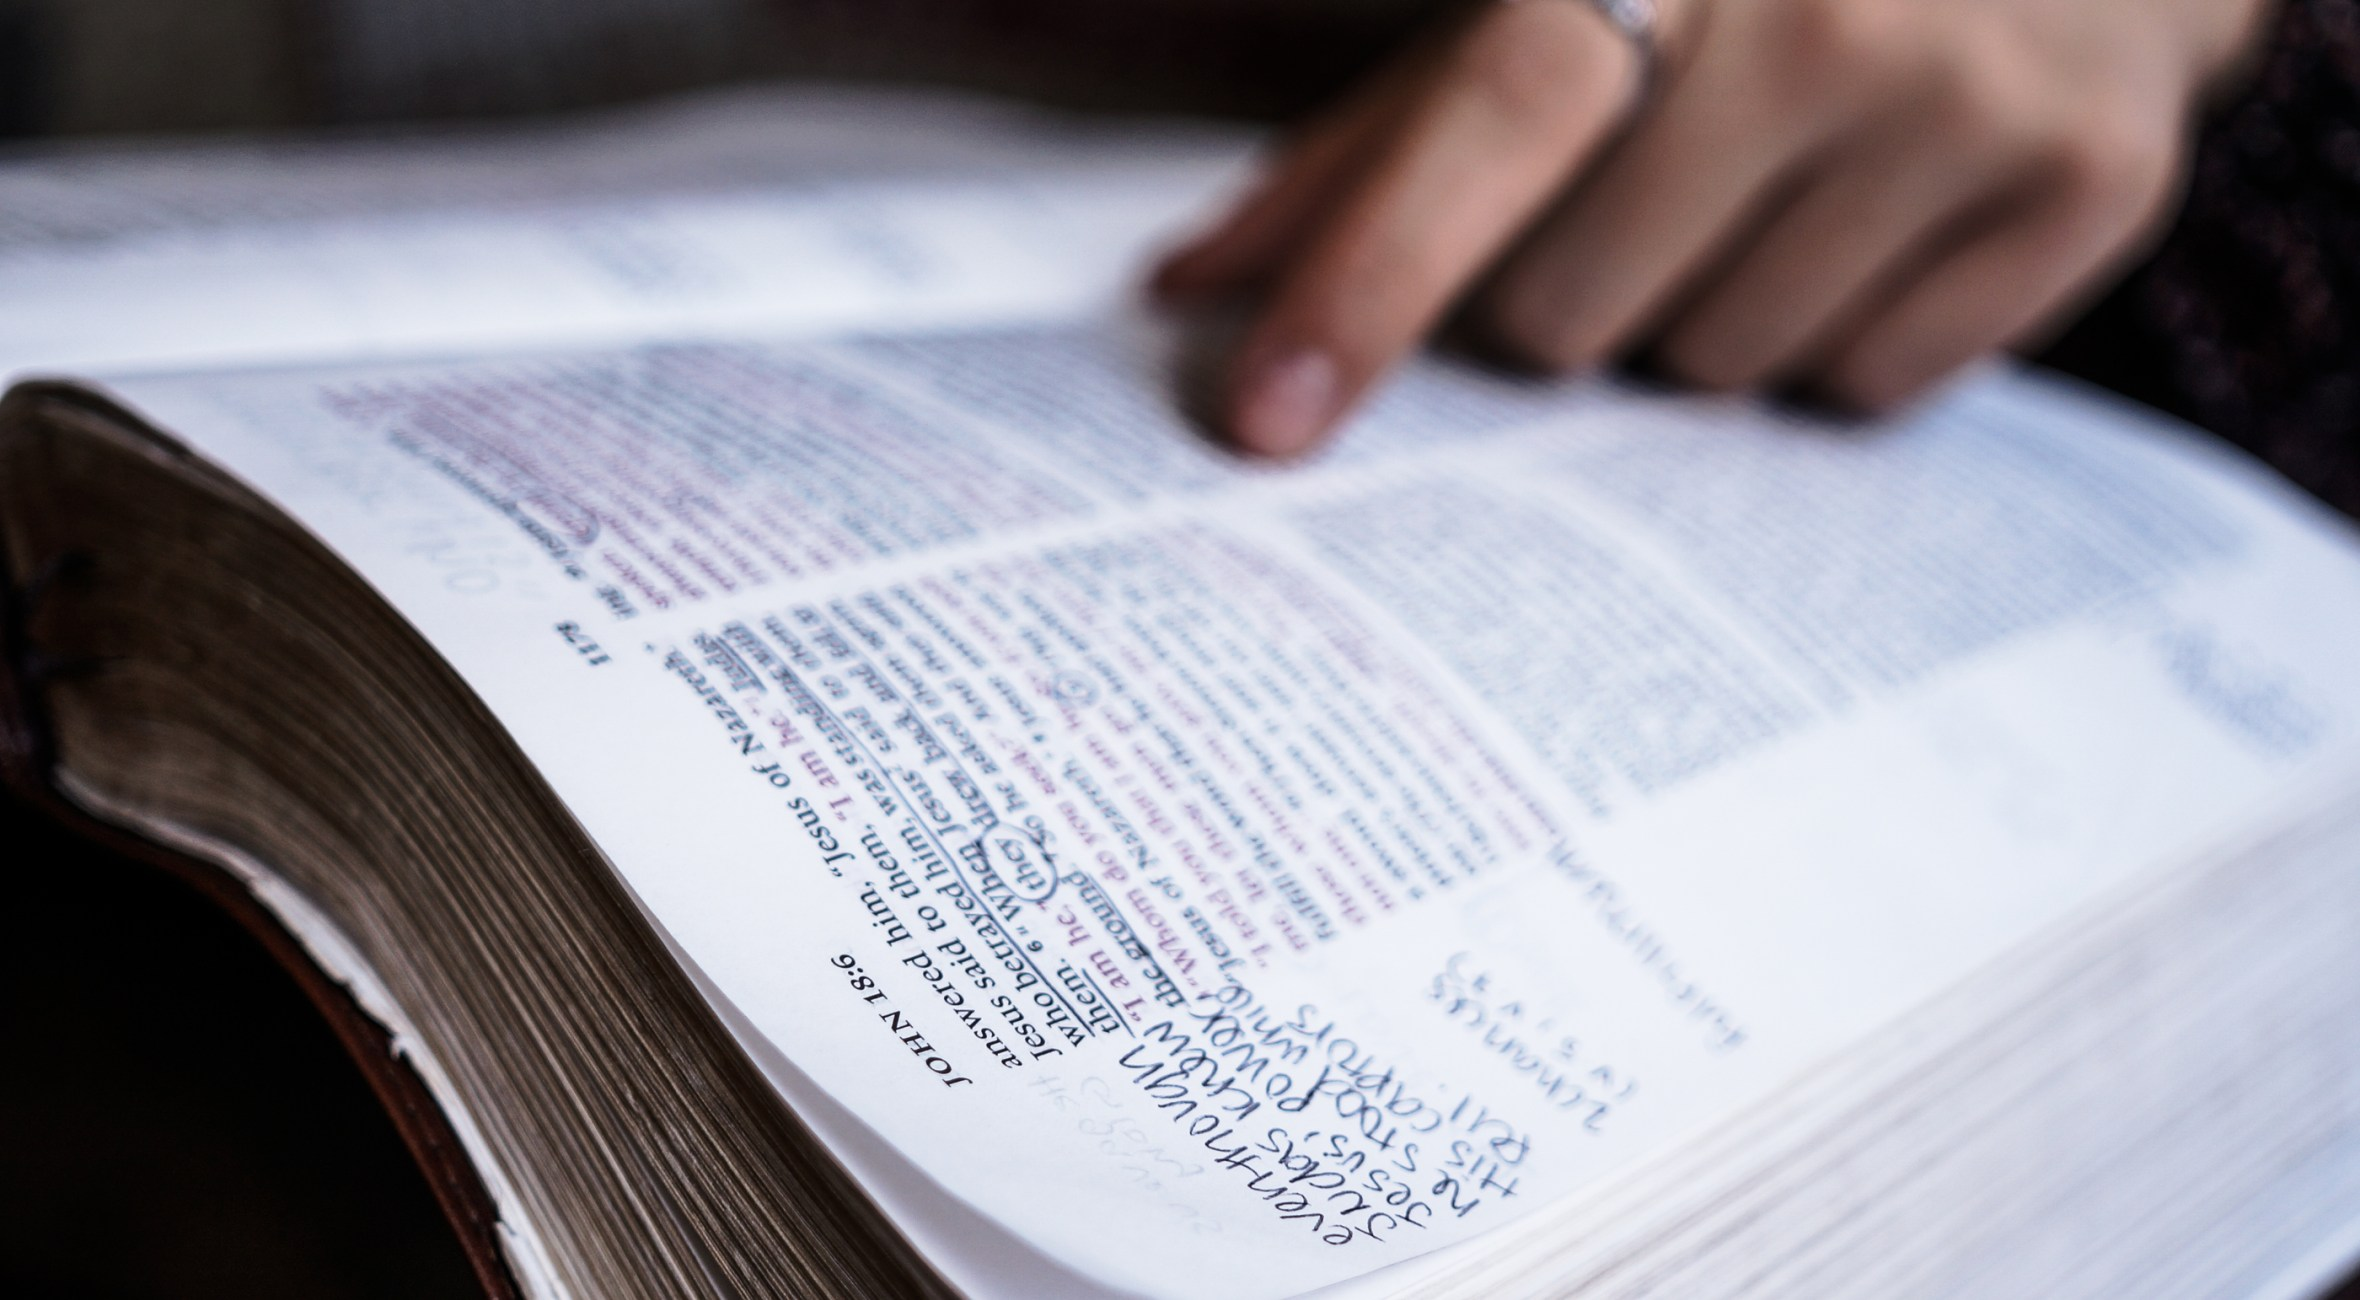 THE INEVITABLE DISORIENTATION OF BIBLICAL ILLITERACY